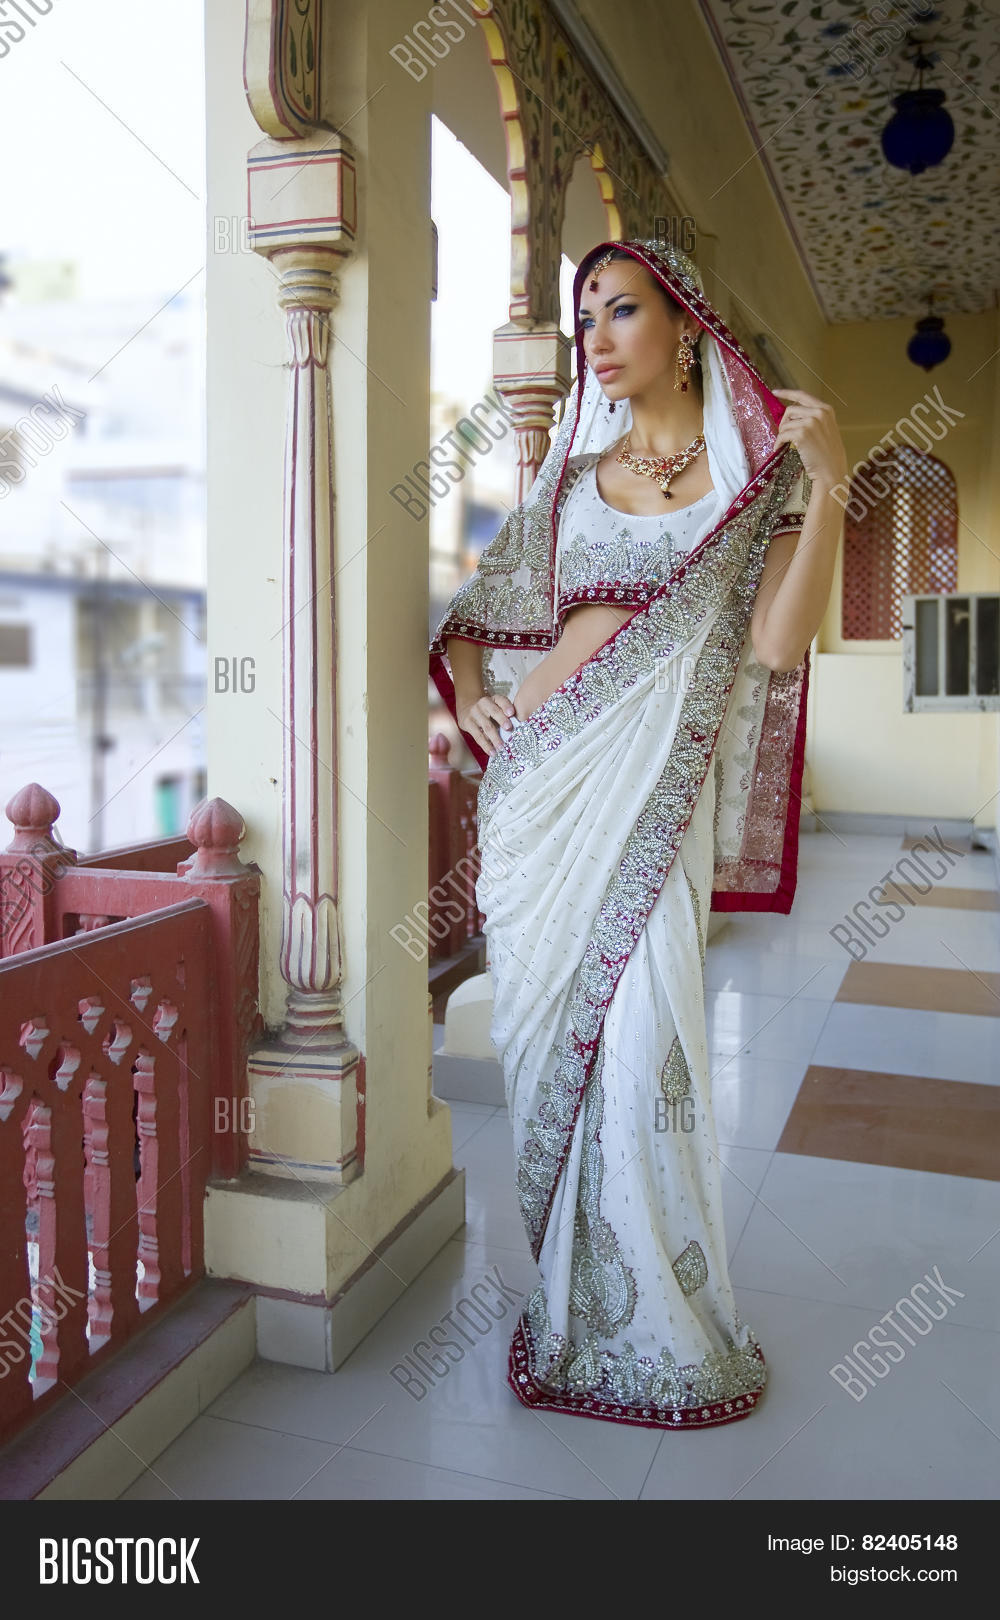 0ee63bcd31 Beautiful Young Indian Woman In Traditional Clothing With Bridal Makeup And Oriental  Jewelry.